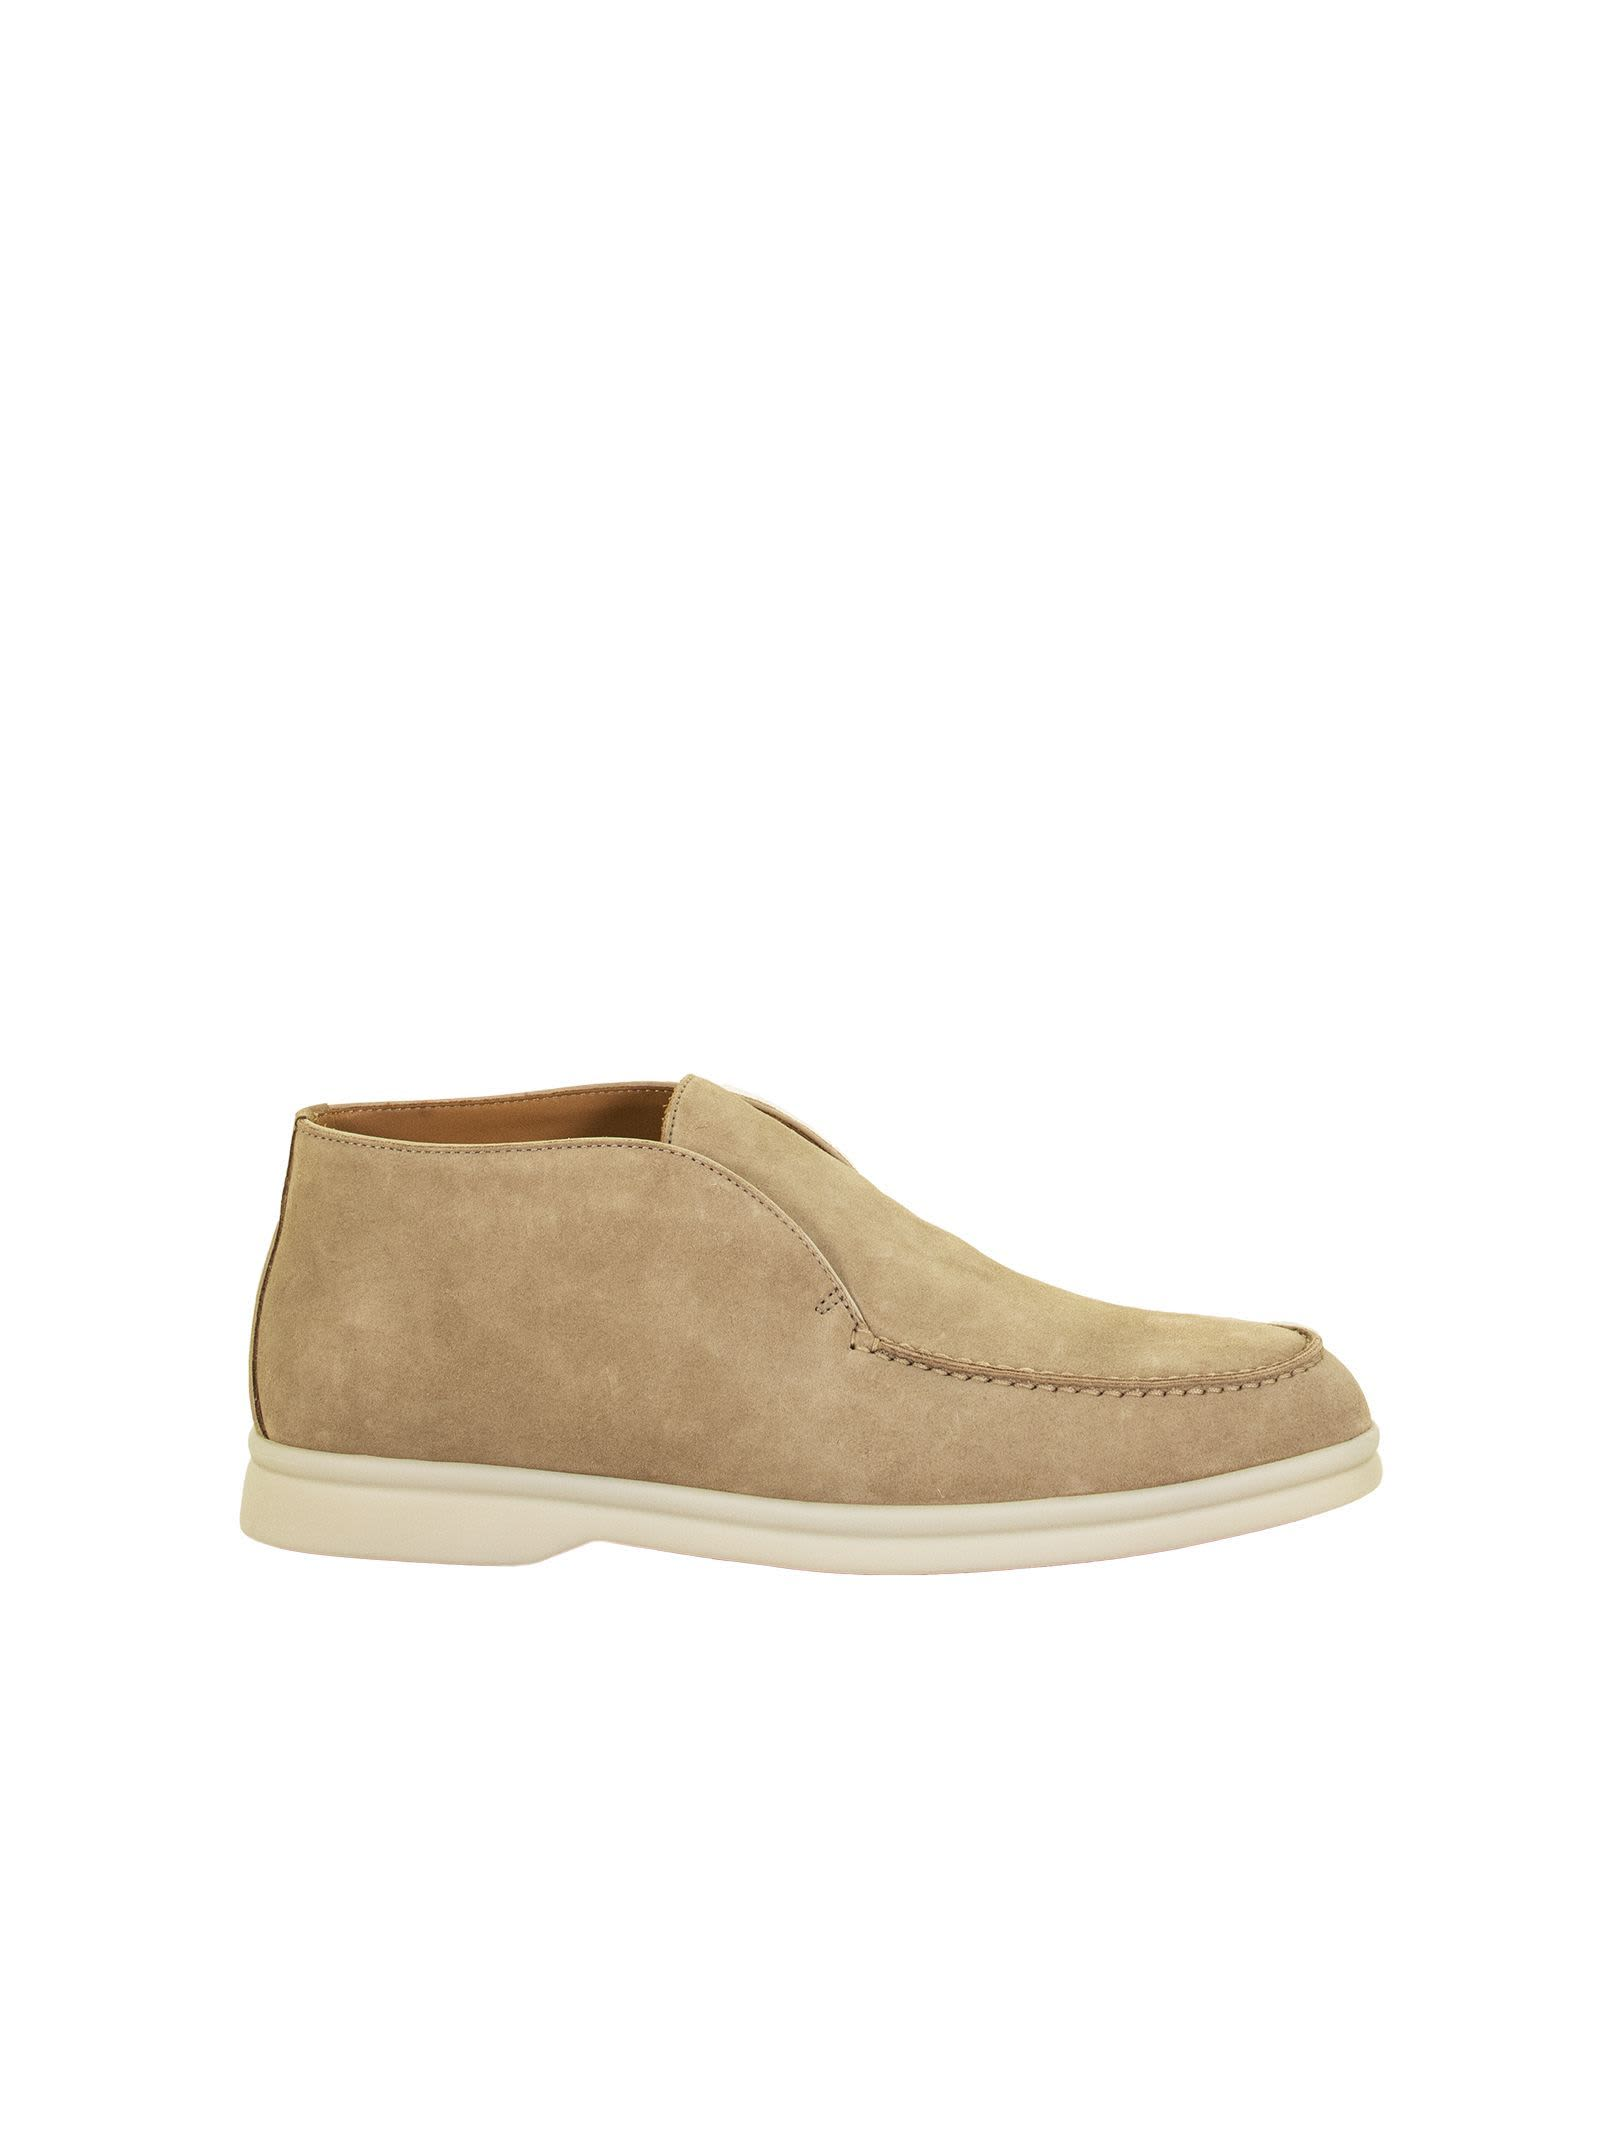 Loro Piana OPEN WALK SUEDE CALF SKIN SANDSTONE LOAFER